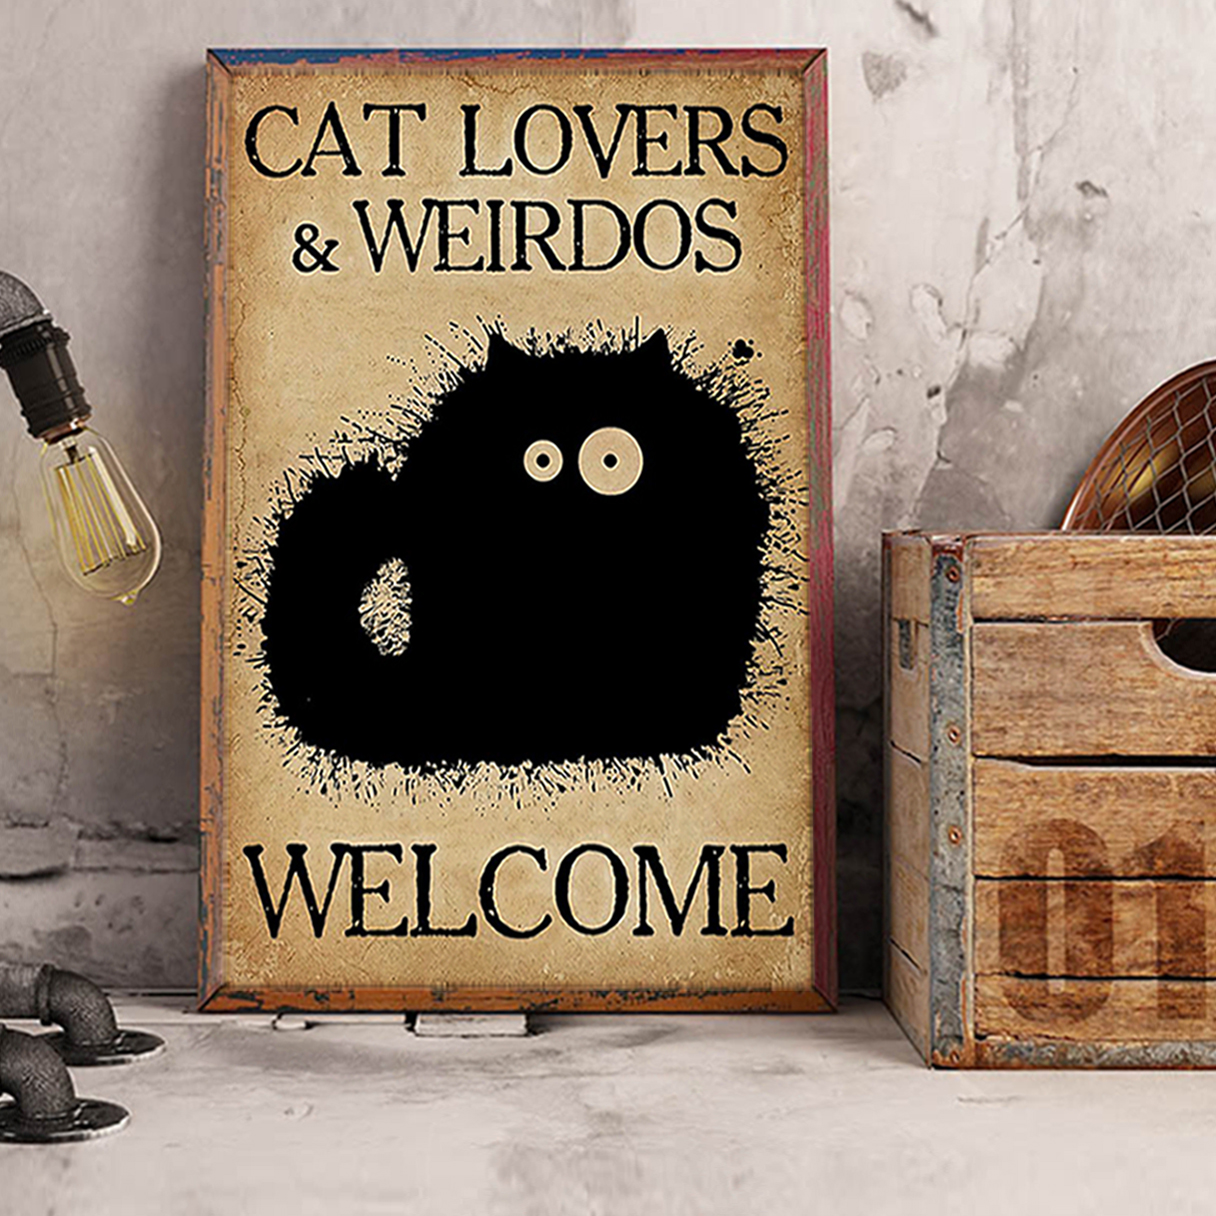 Cat lovers and weirdos welcome poster A3